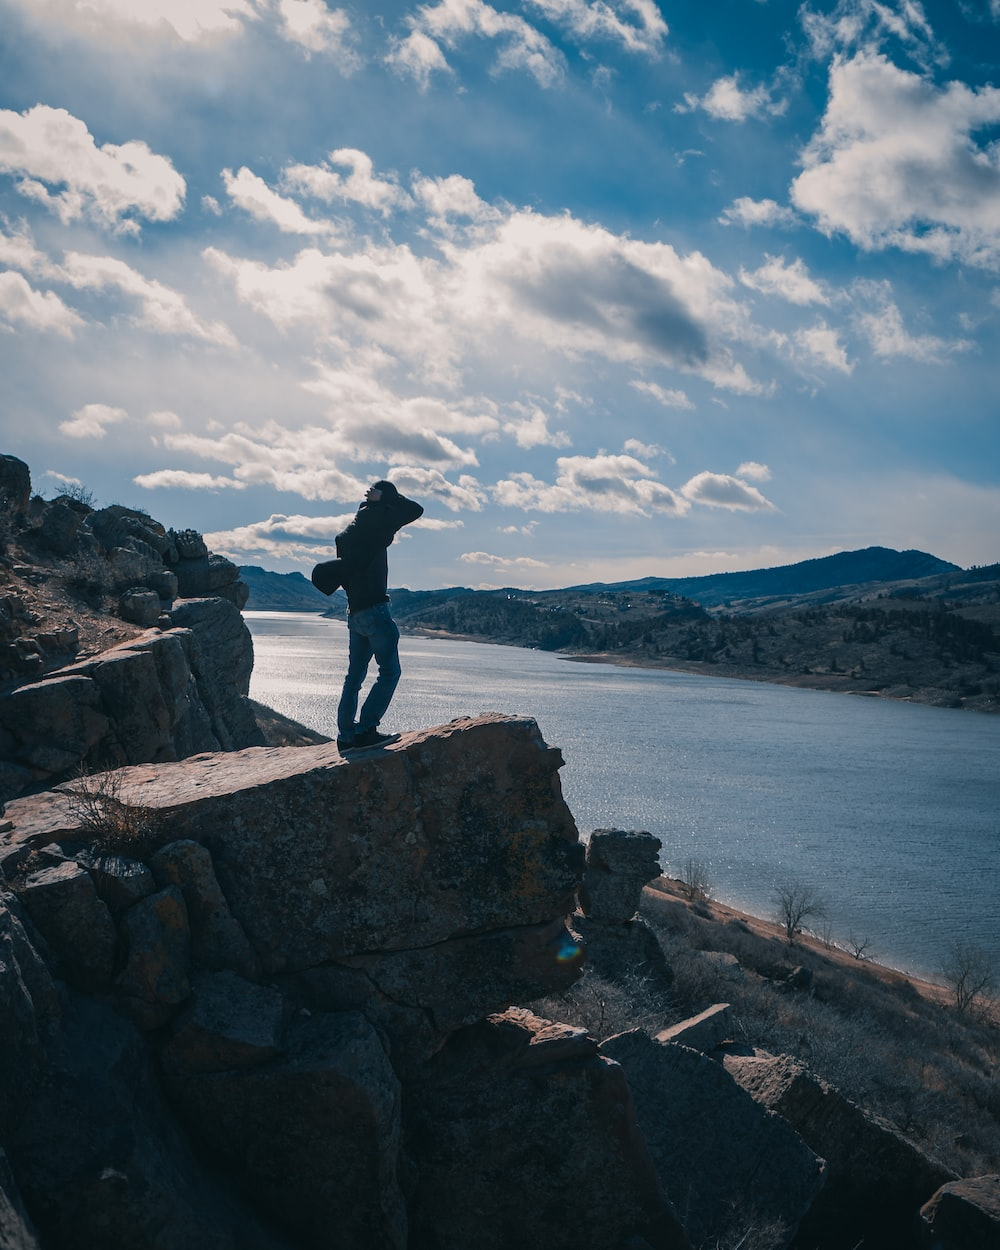 man in black jacket standing on rock near body of water during daytime